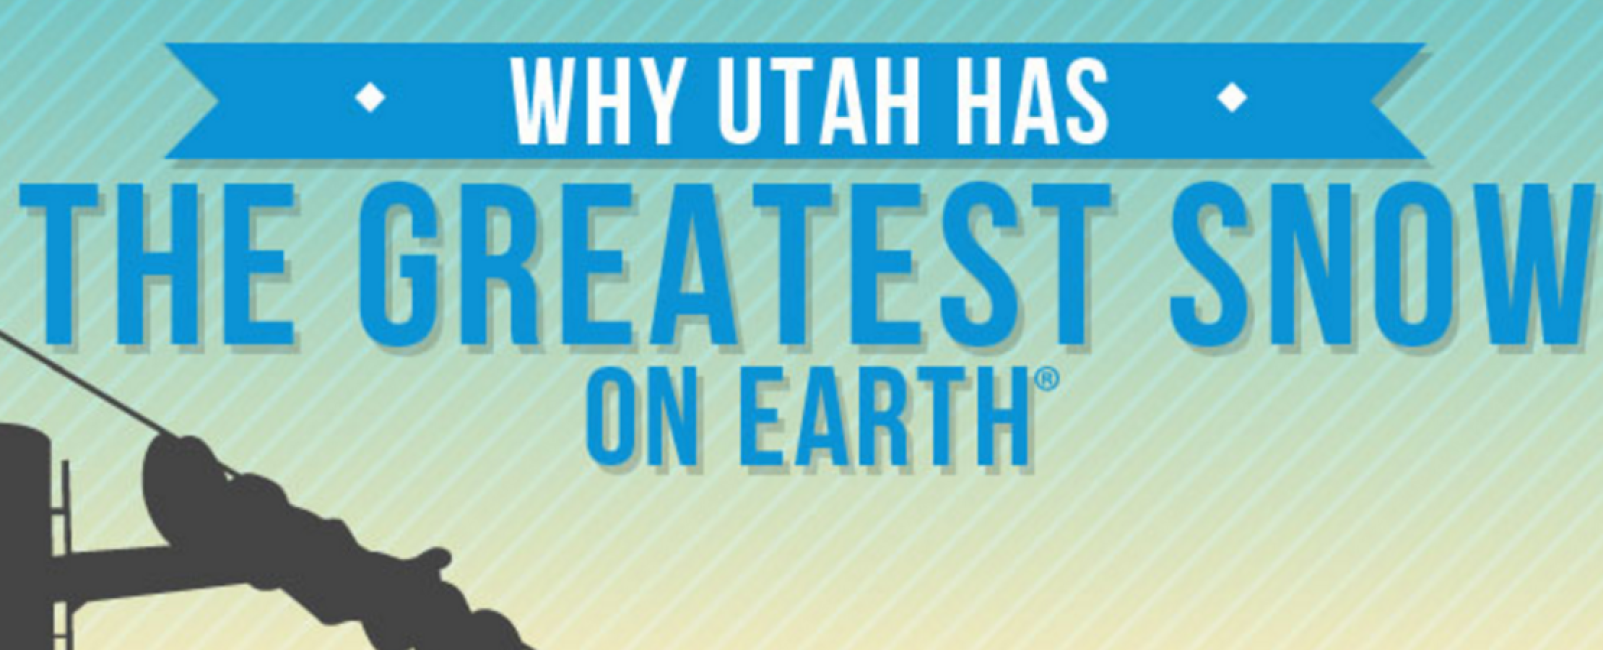 Why Utah has The Greatest Snow on Earth